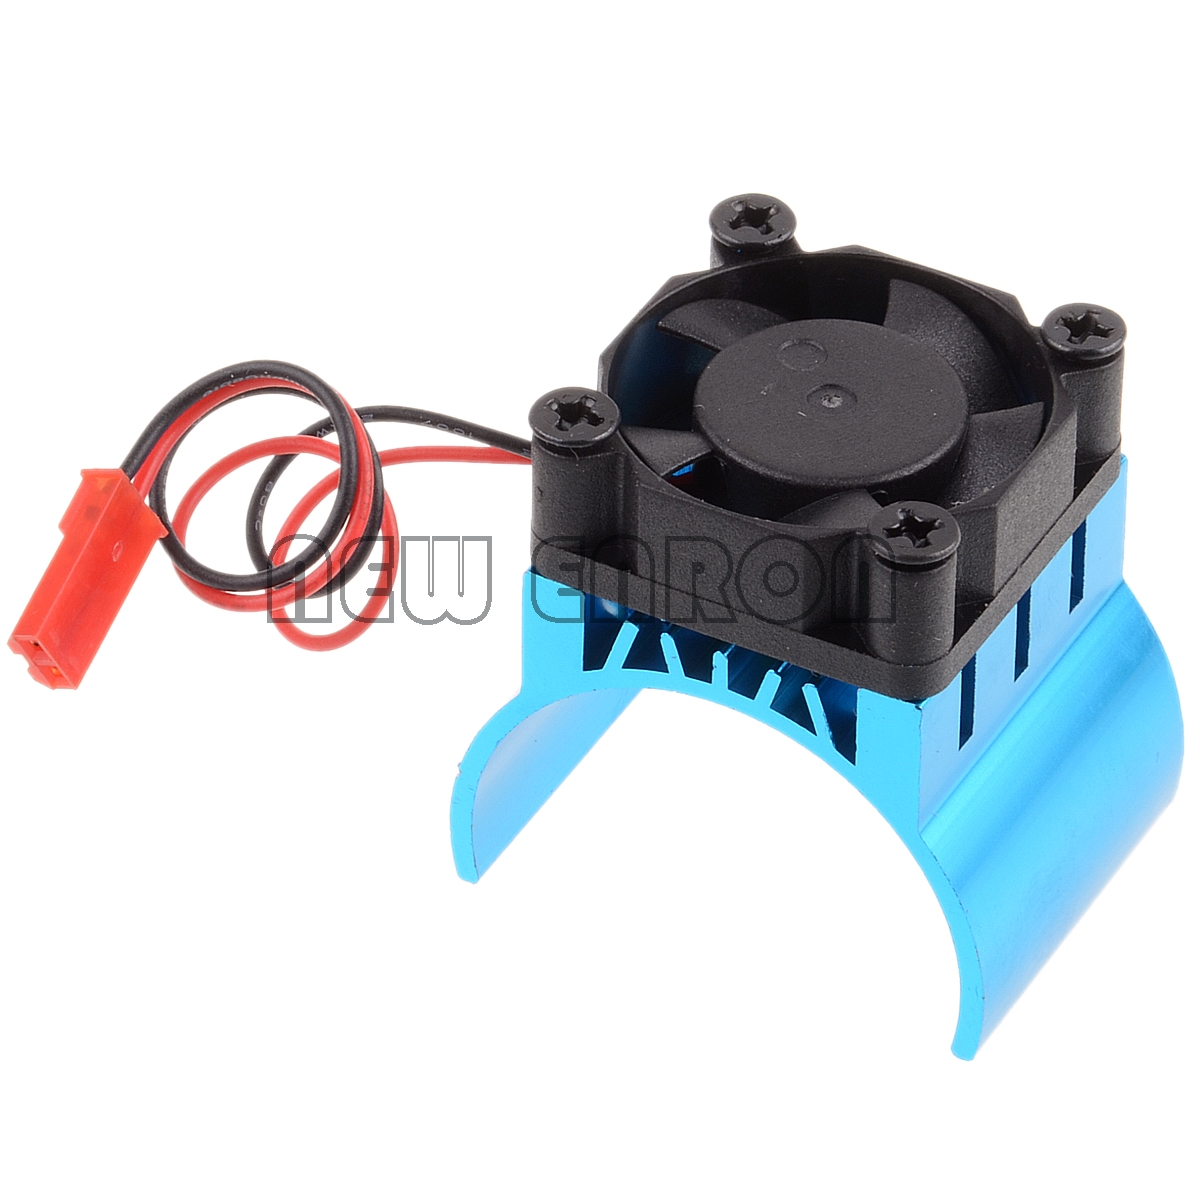 03300 Heat Sink 540 550 Stock Modified Motor RC CAR 1//10 HSP RedCat Himoto NEW